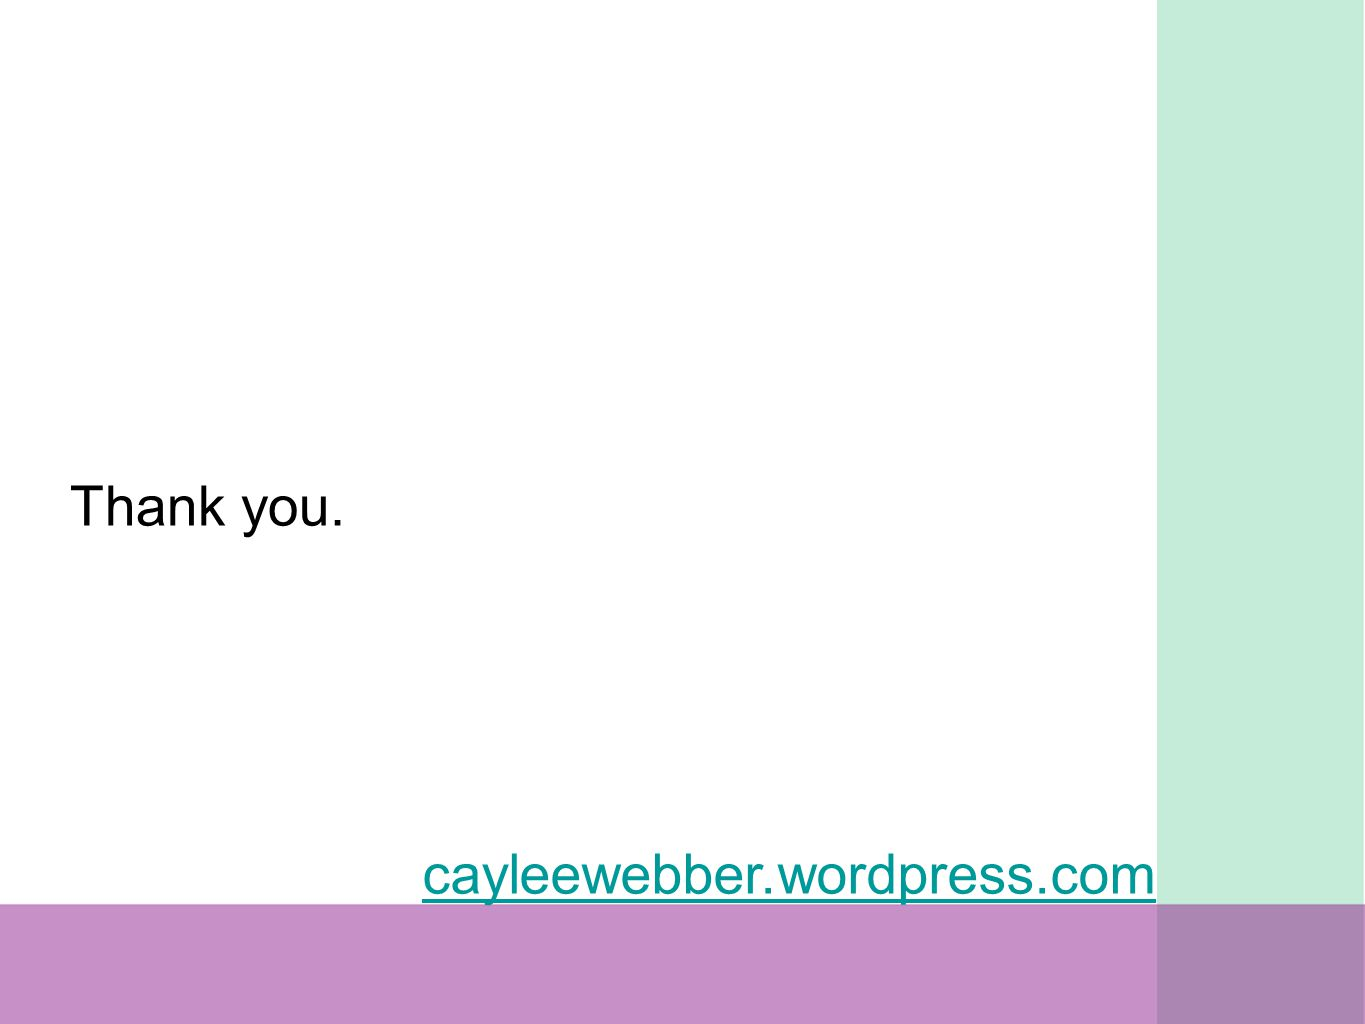 Thank you. cayleewebber.wordpress.com